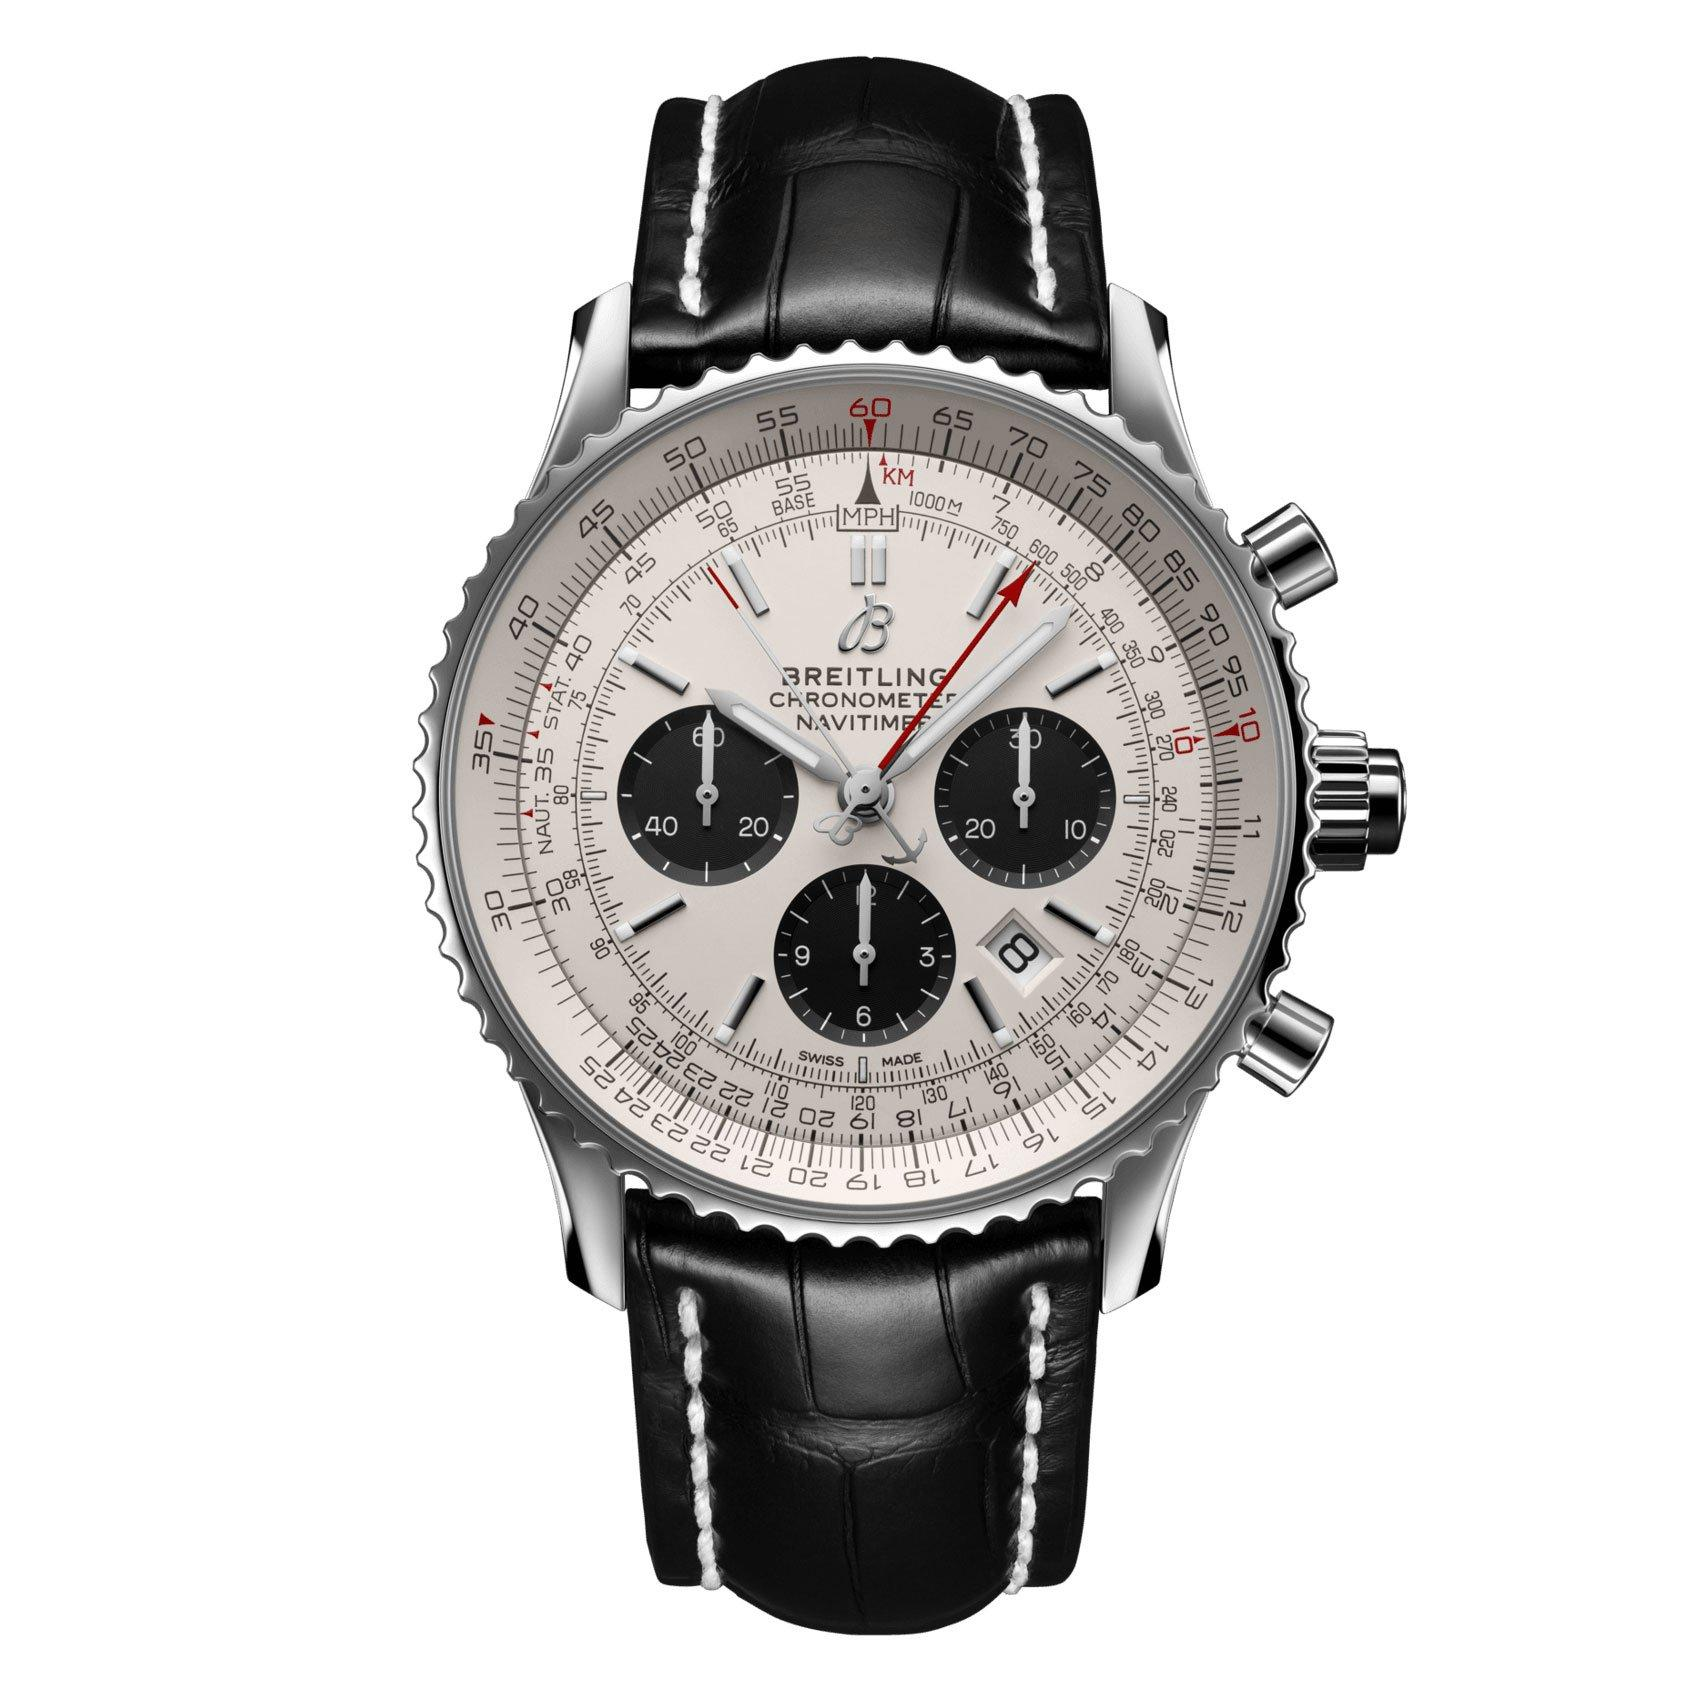 Breitling Navitimer B03 Chronograph Rattrapante 45 Automatic Men's Watch